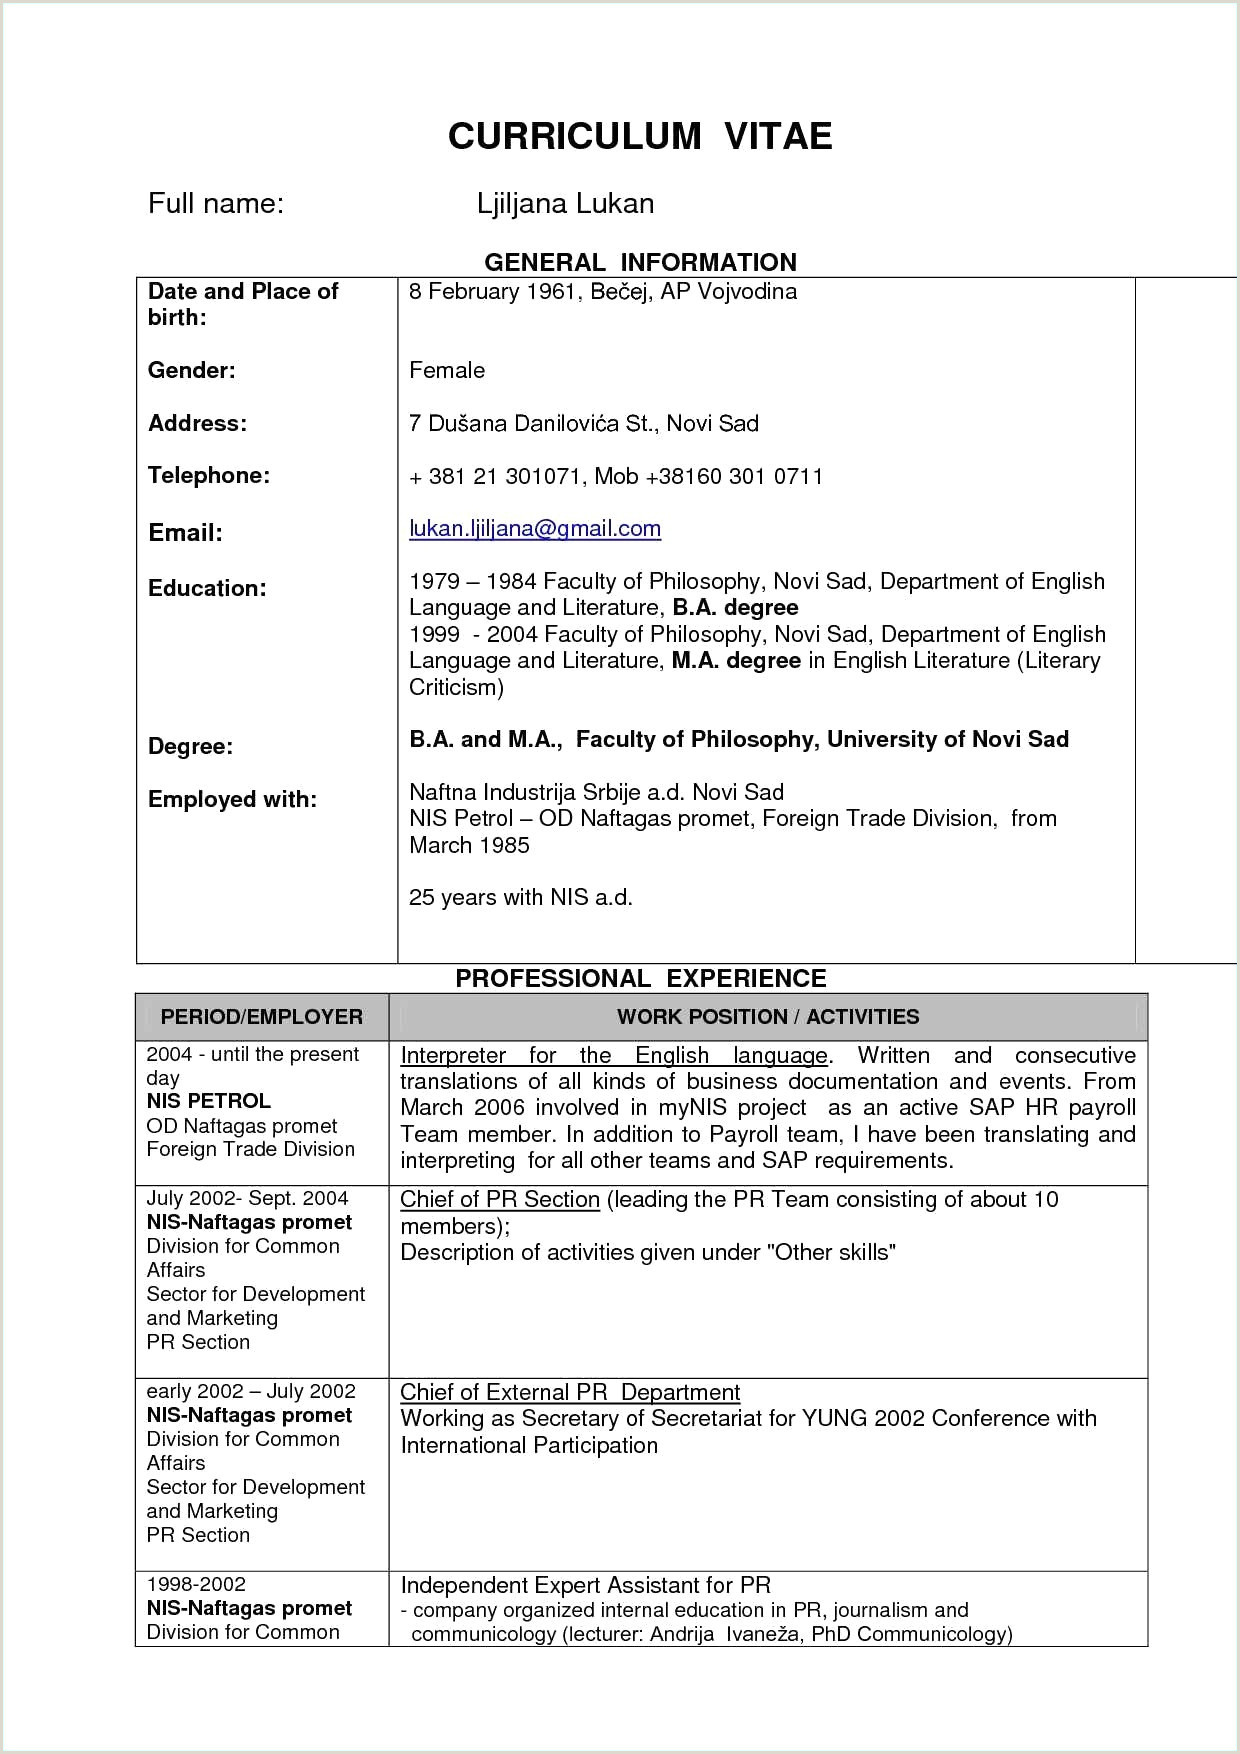 Fresher Resume Format Download In Ms Word India Simple Resume Format For Freshers Free 13 Resume Sample For